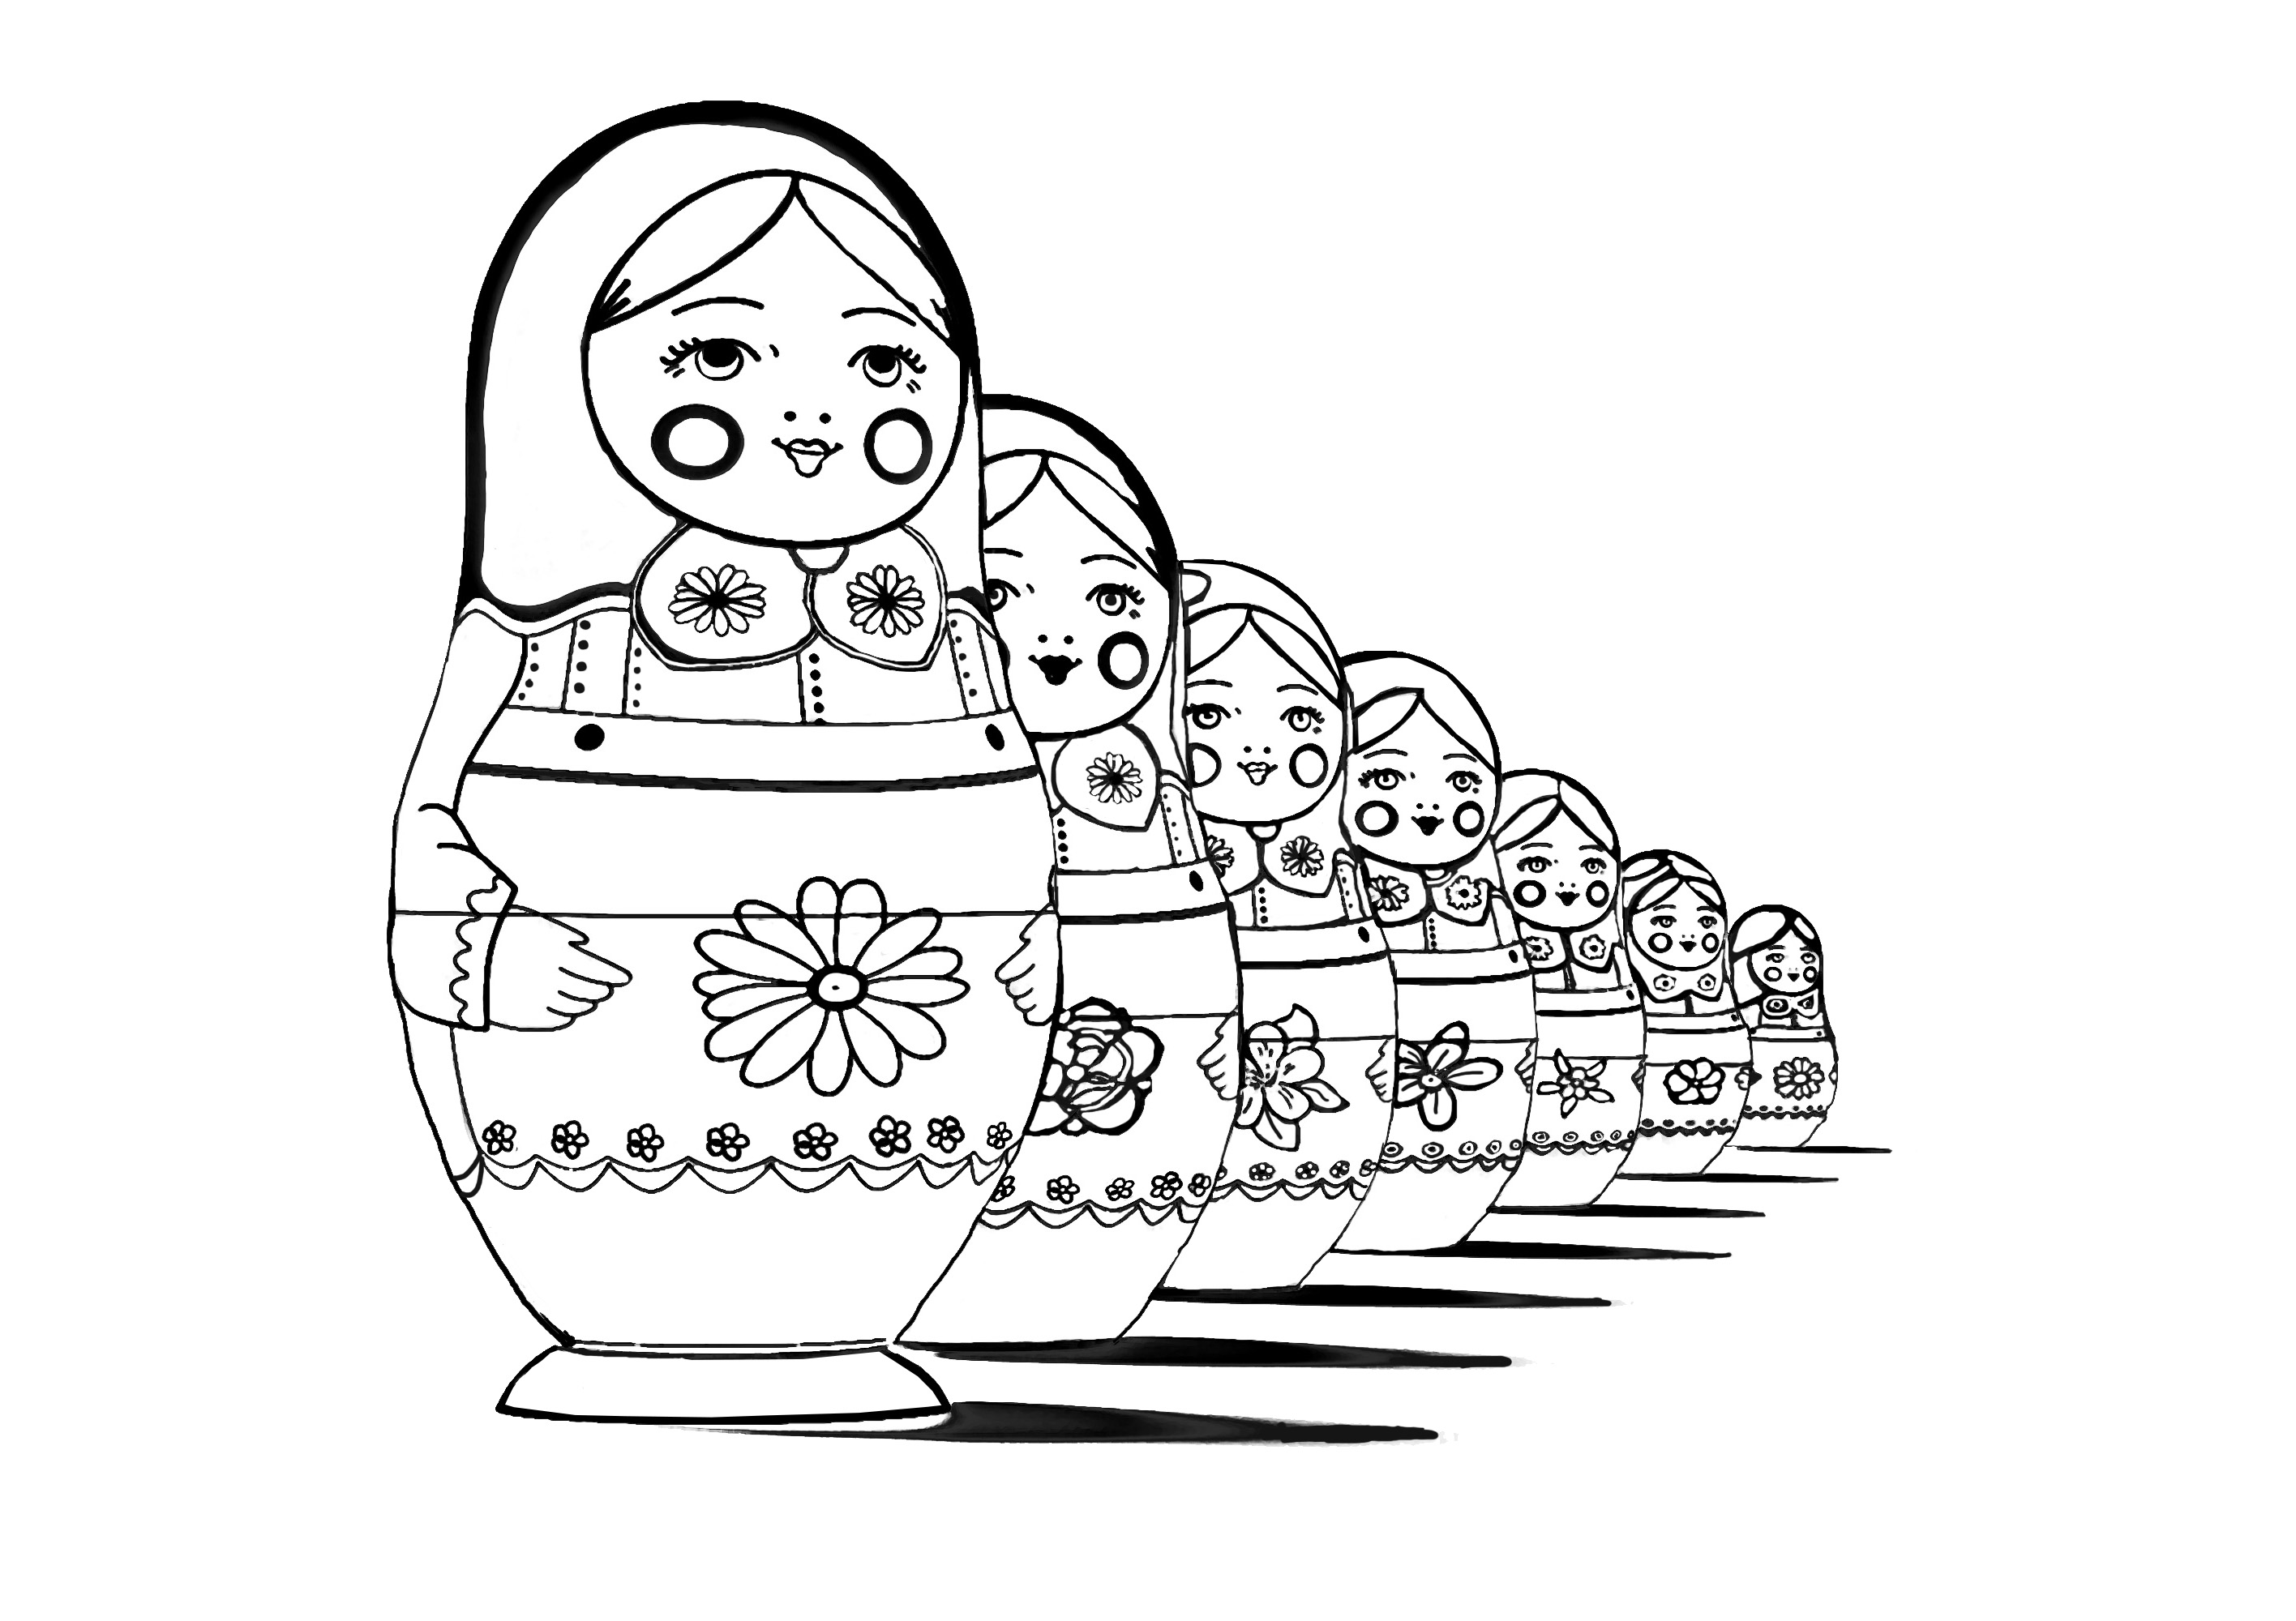 Russian Dolls Perspective Russian Dolls Adult Coloring Pages - Dolls-coloring-pages